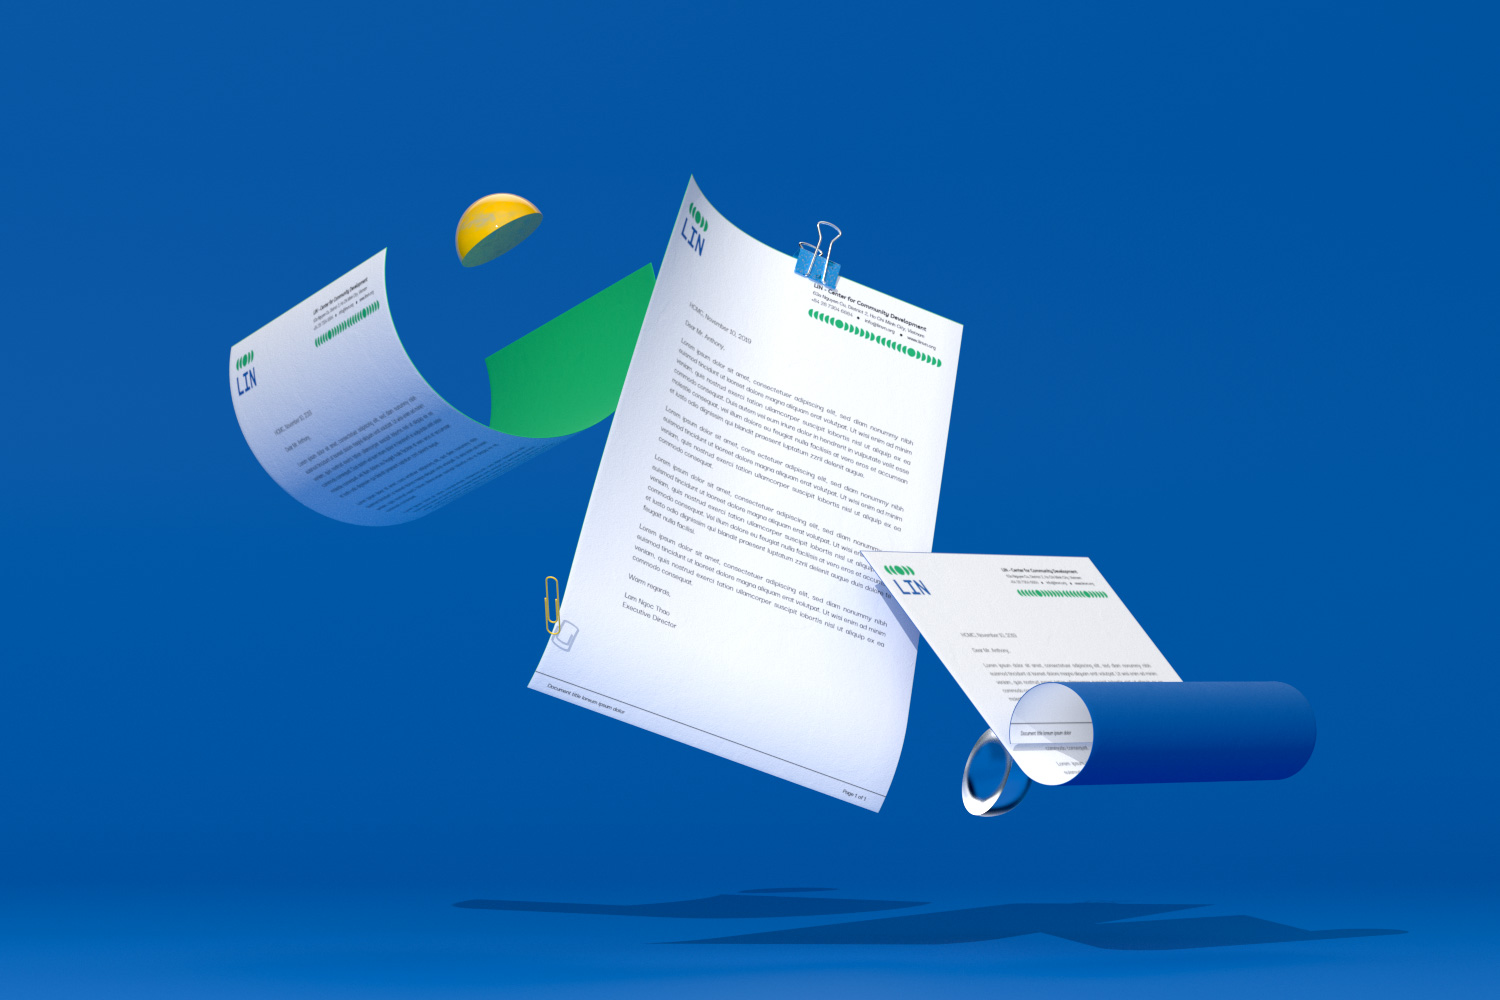 Letterhead levitate with semi spheres prop